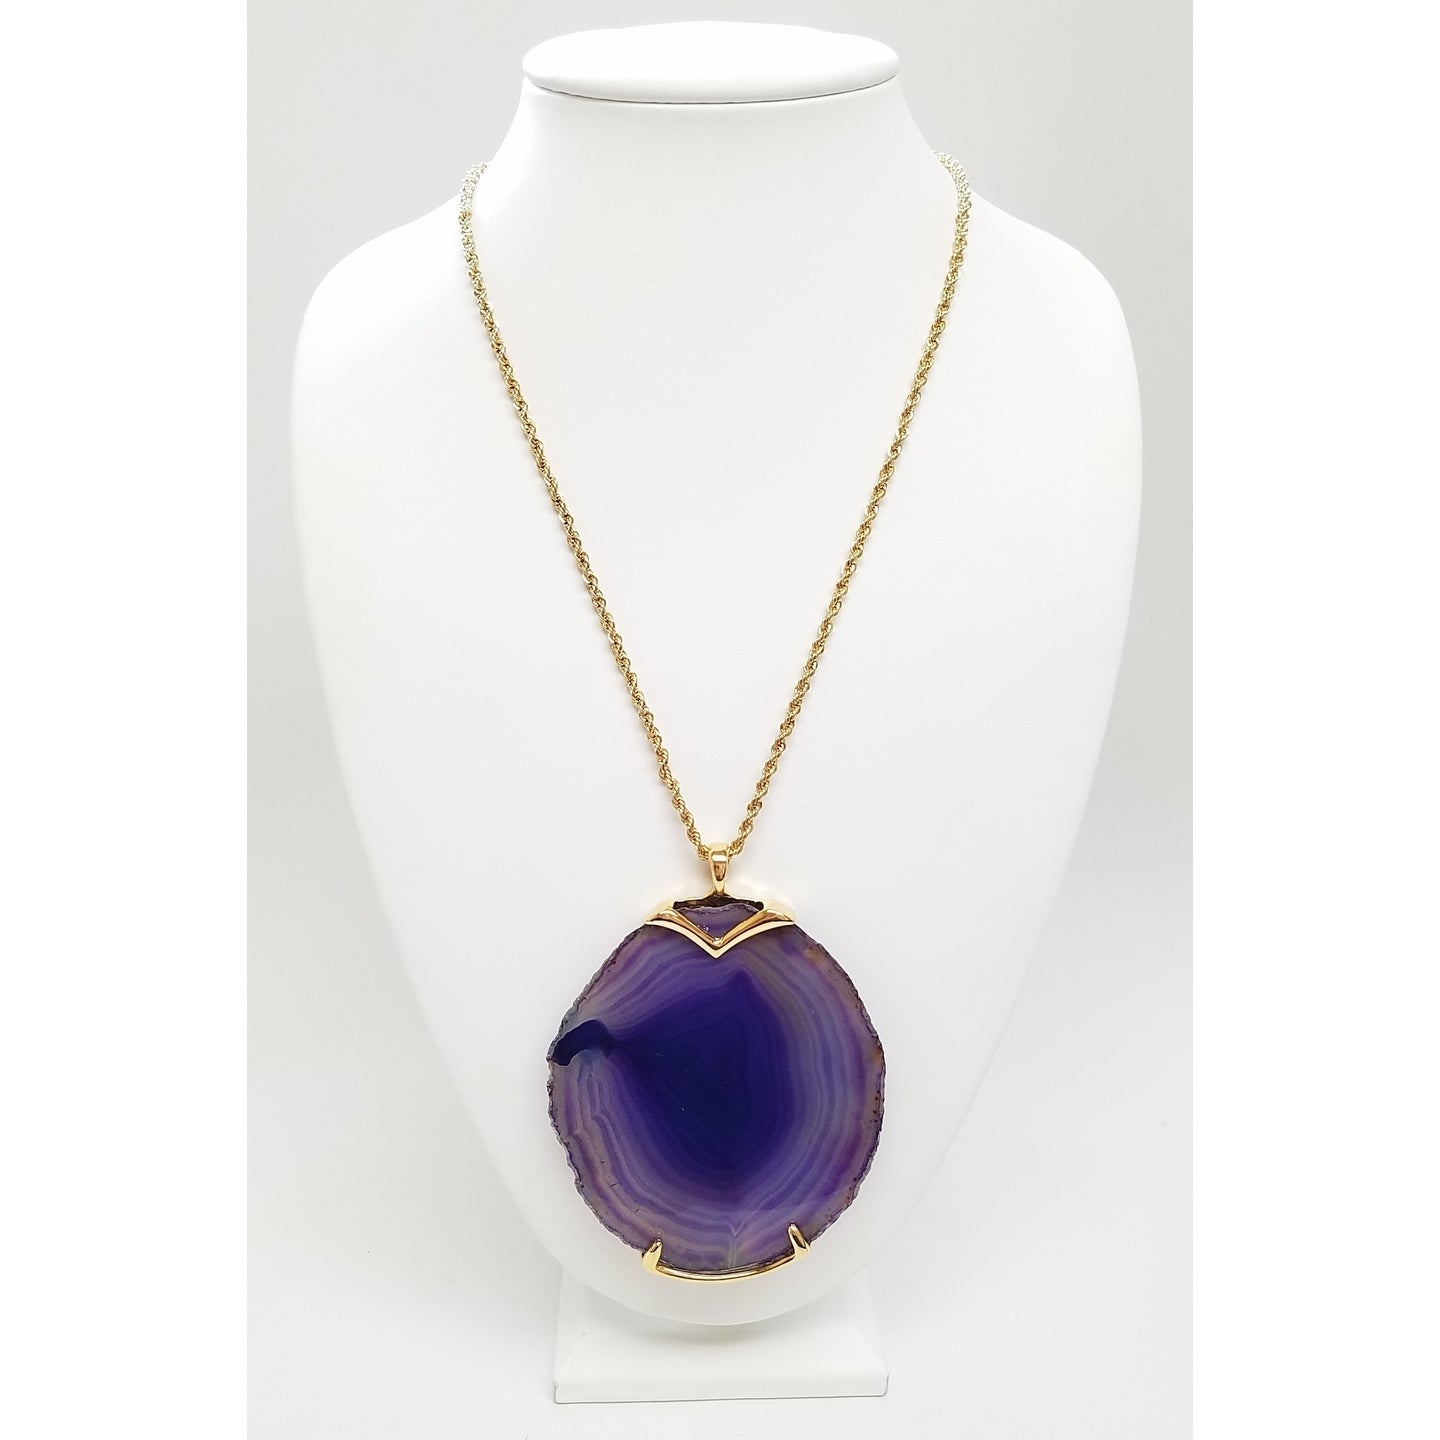 grabr glow products moonstone stone purple necklace image deal moon luminous product